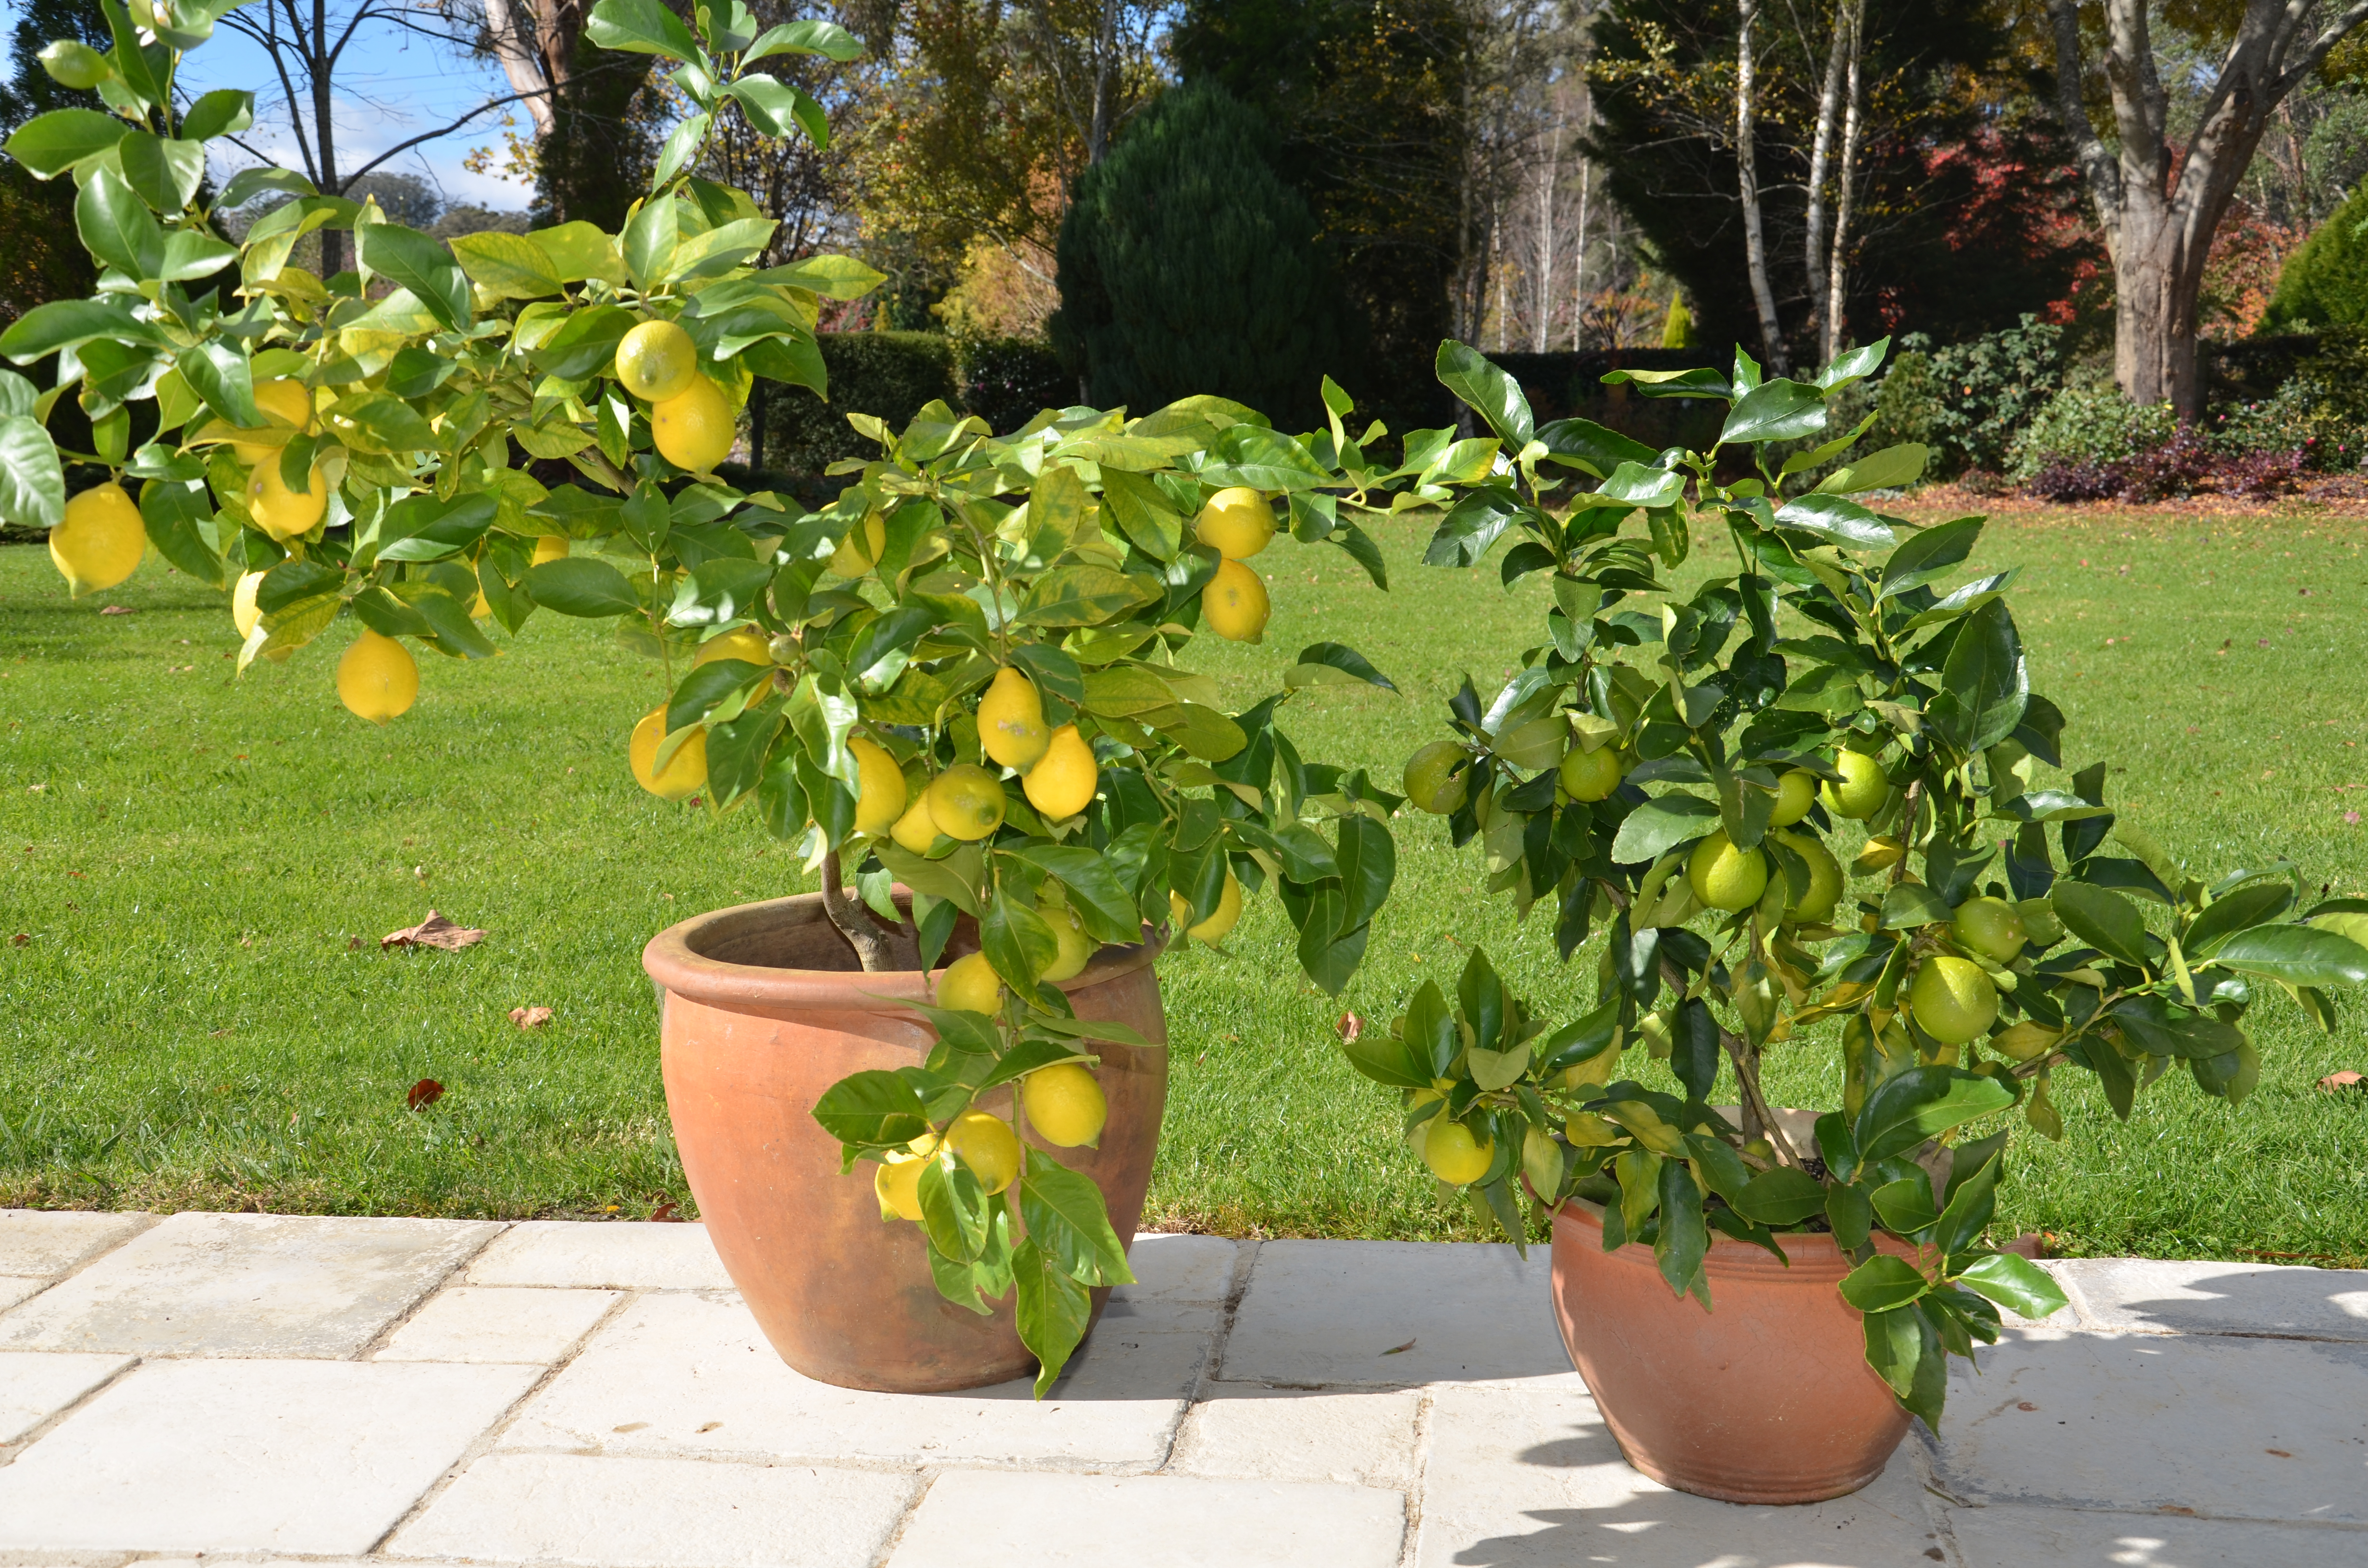 How to maintain your potted citrus myproductivebackyard for Growing a lemon tree in a pot from seed